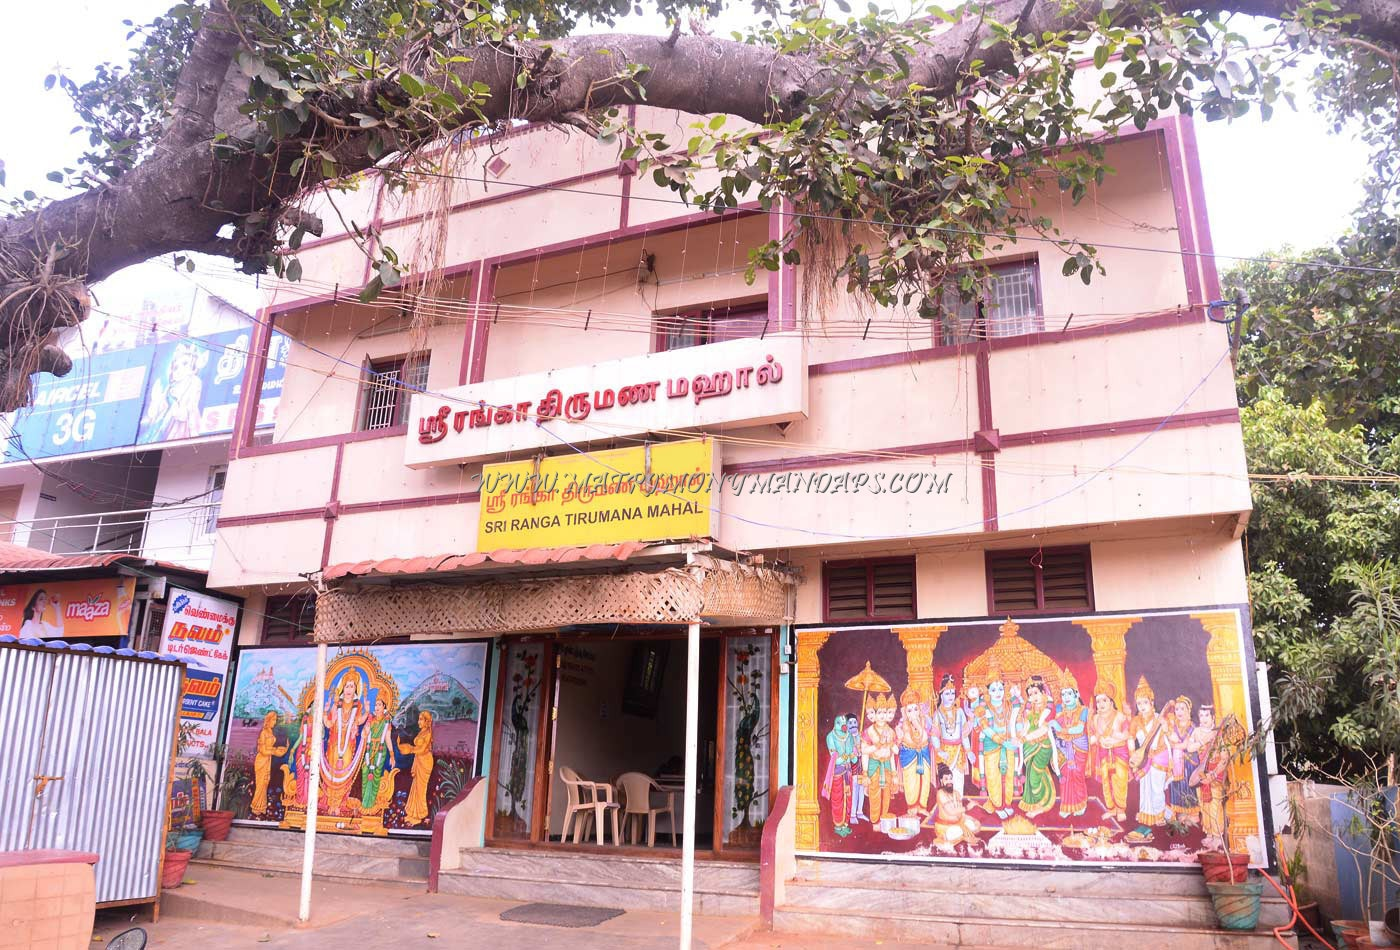 Find More Kalyana Mandapams in Maruthamalai Road